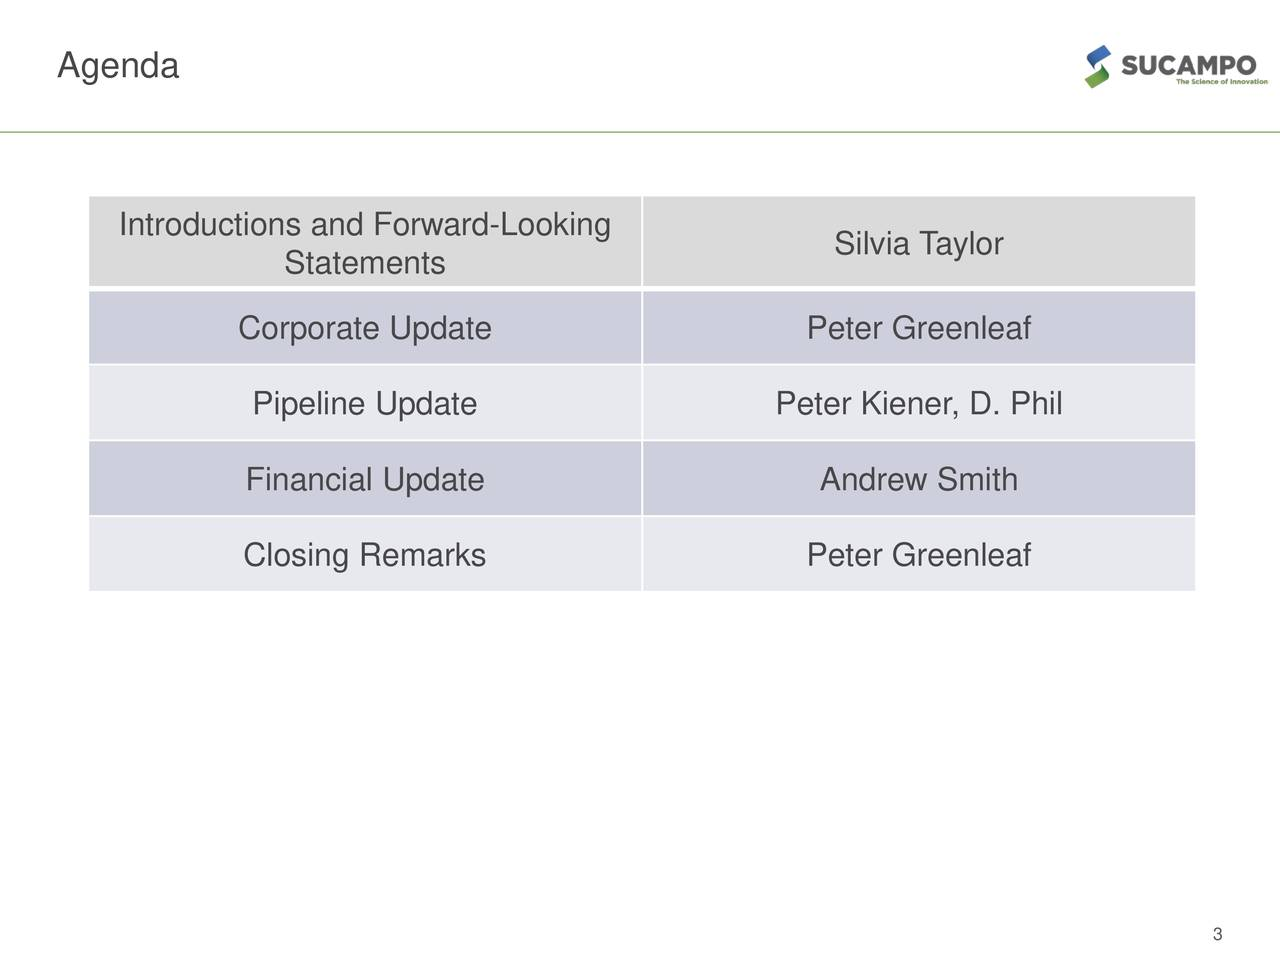 Introductions and Forward-Looking Silvia Taylor Statements Corporate Update Peter Greenleaf Pipeline Update Peter Kiener, D. Phil Financial Update Andrew Smith Closing Remarks Peter Greenleaf 3